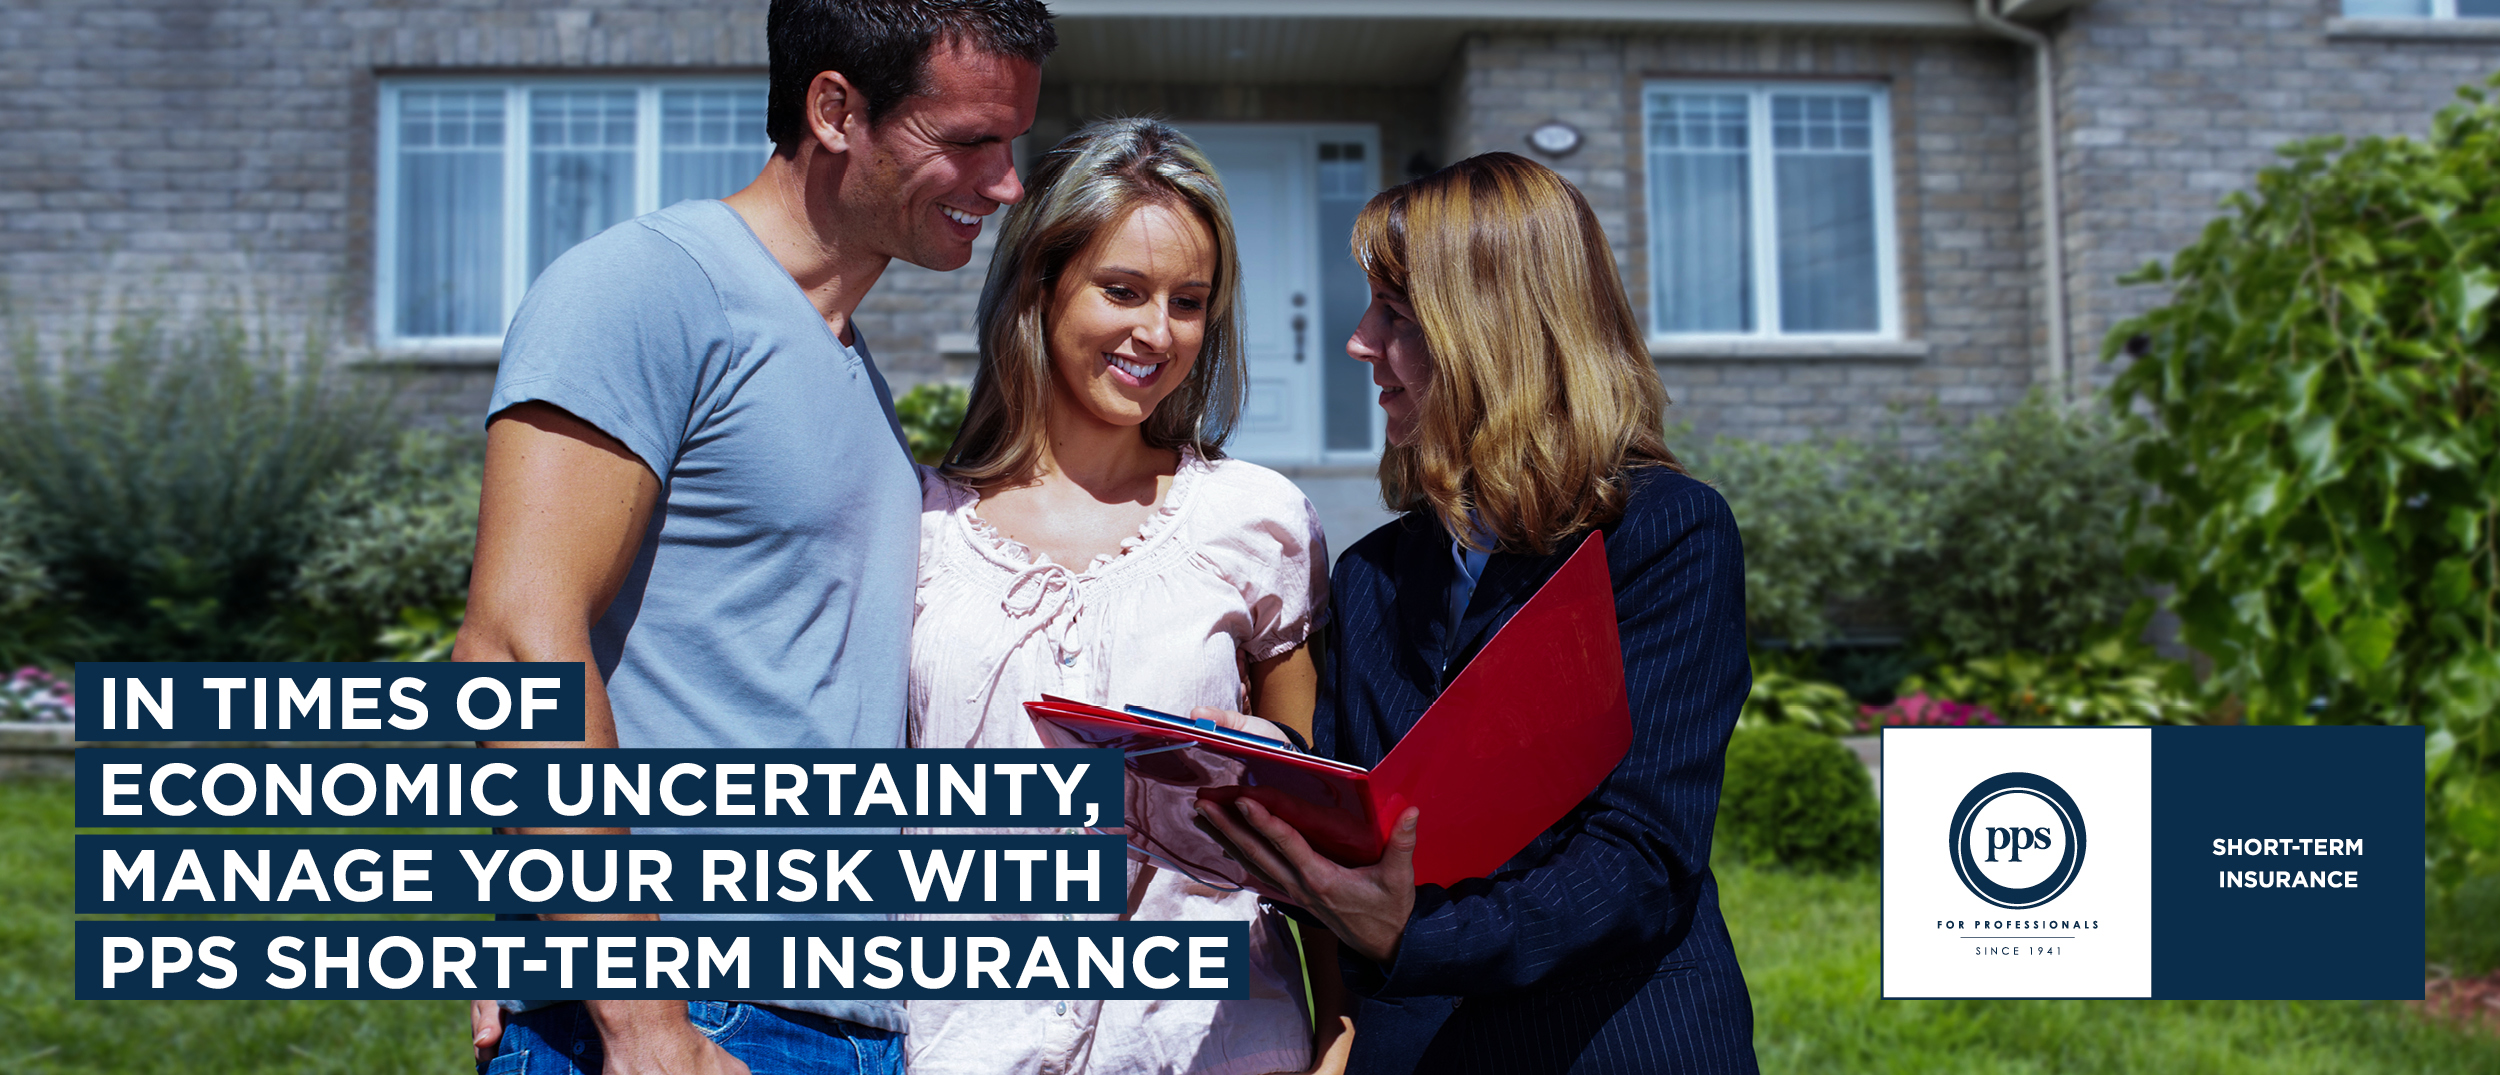 In times of economic uncertainty, manage your risk with PPS Short-Term Insurance